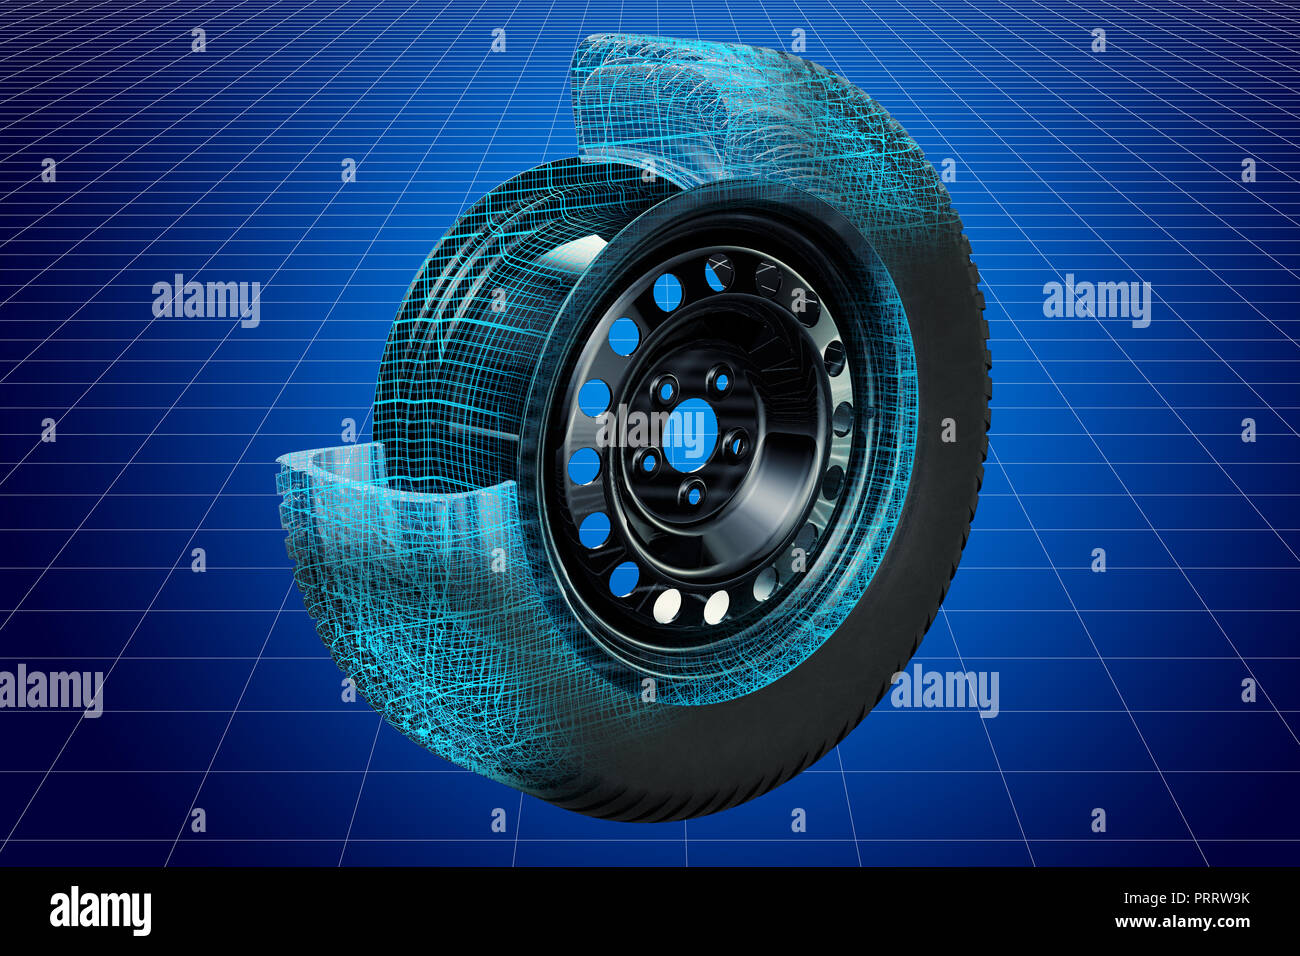 Visualization 3d Cad Model Of Car Wheel Blueprint 3d Rendering Stock Photo Alamy